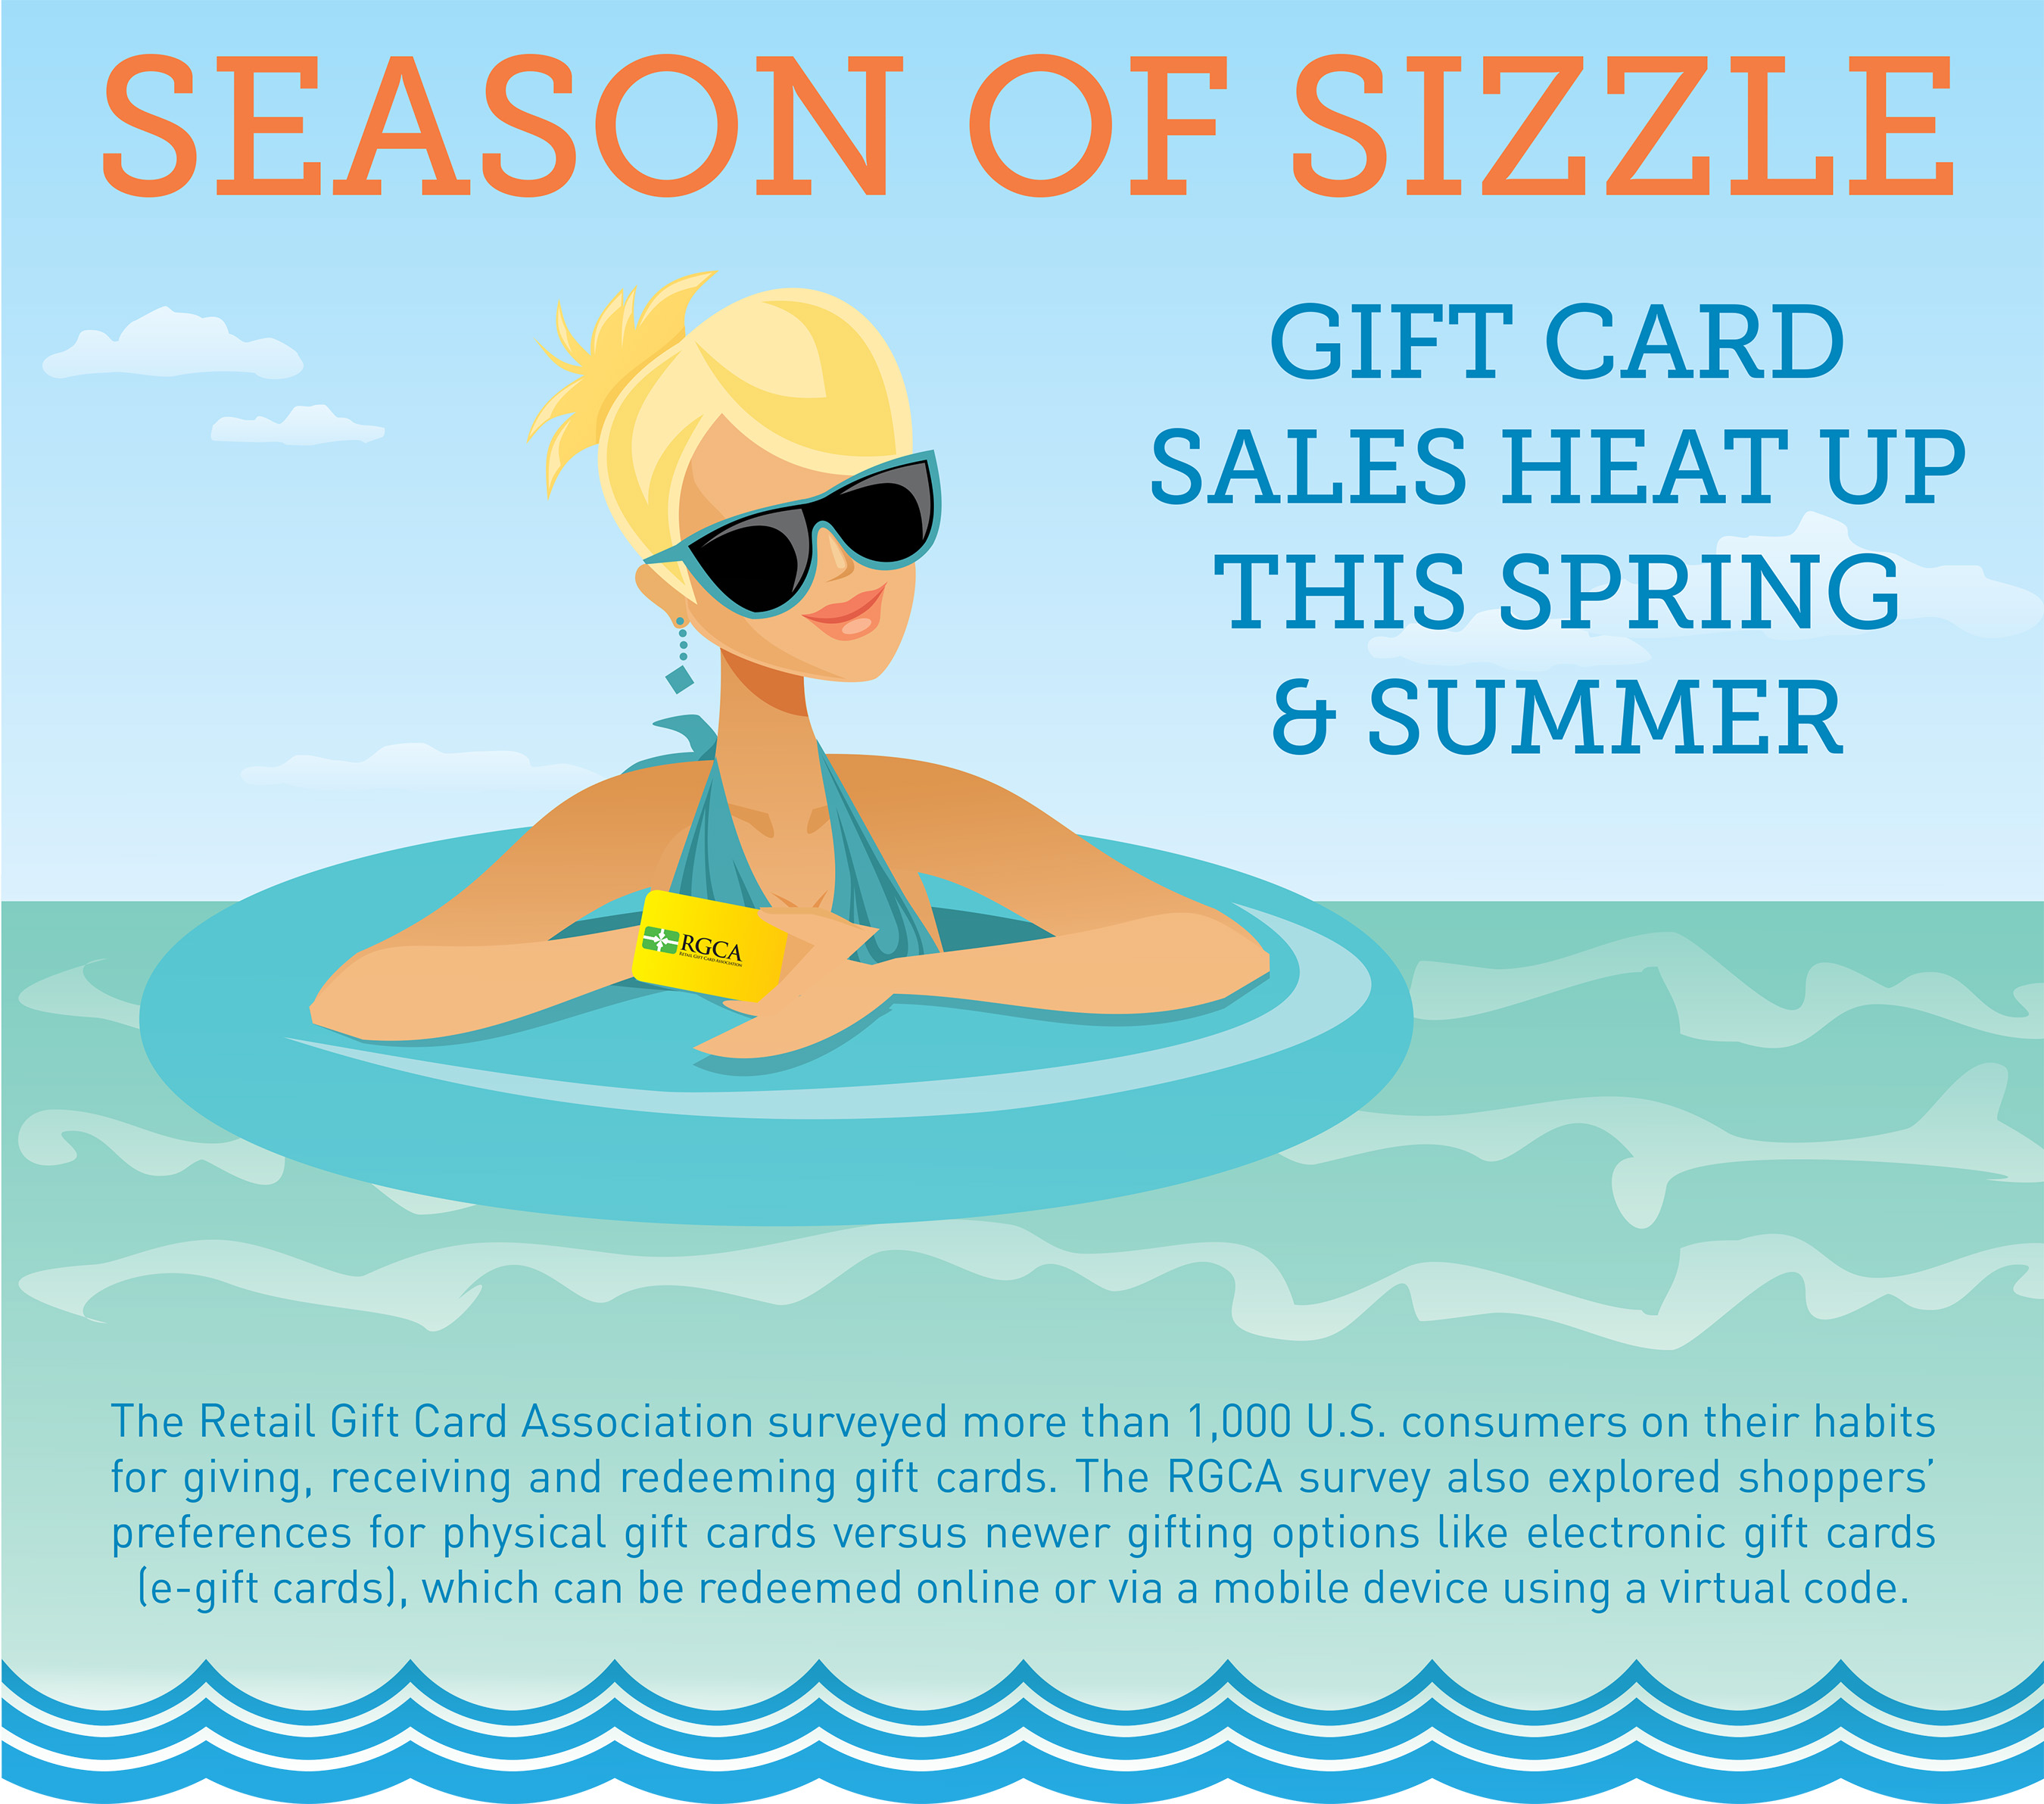 Gift card sales are heating up this spring and summer with 95% of consumers hoping to receive gift cards. The Retail Gift Card Association surveyed more than 1,000 U.S. consumers on their use and habits for giving and receiving the cards.